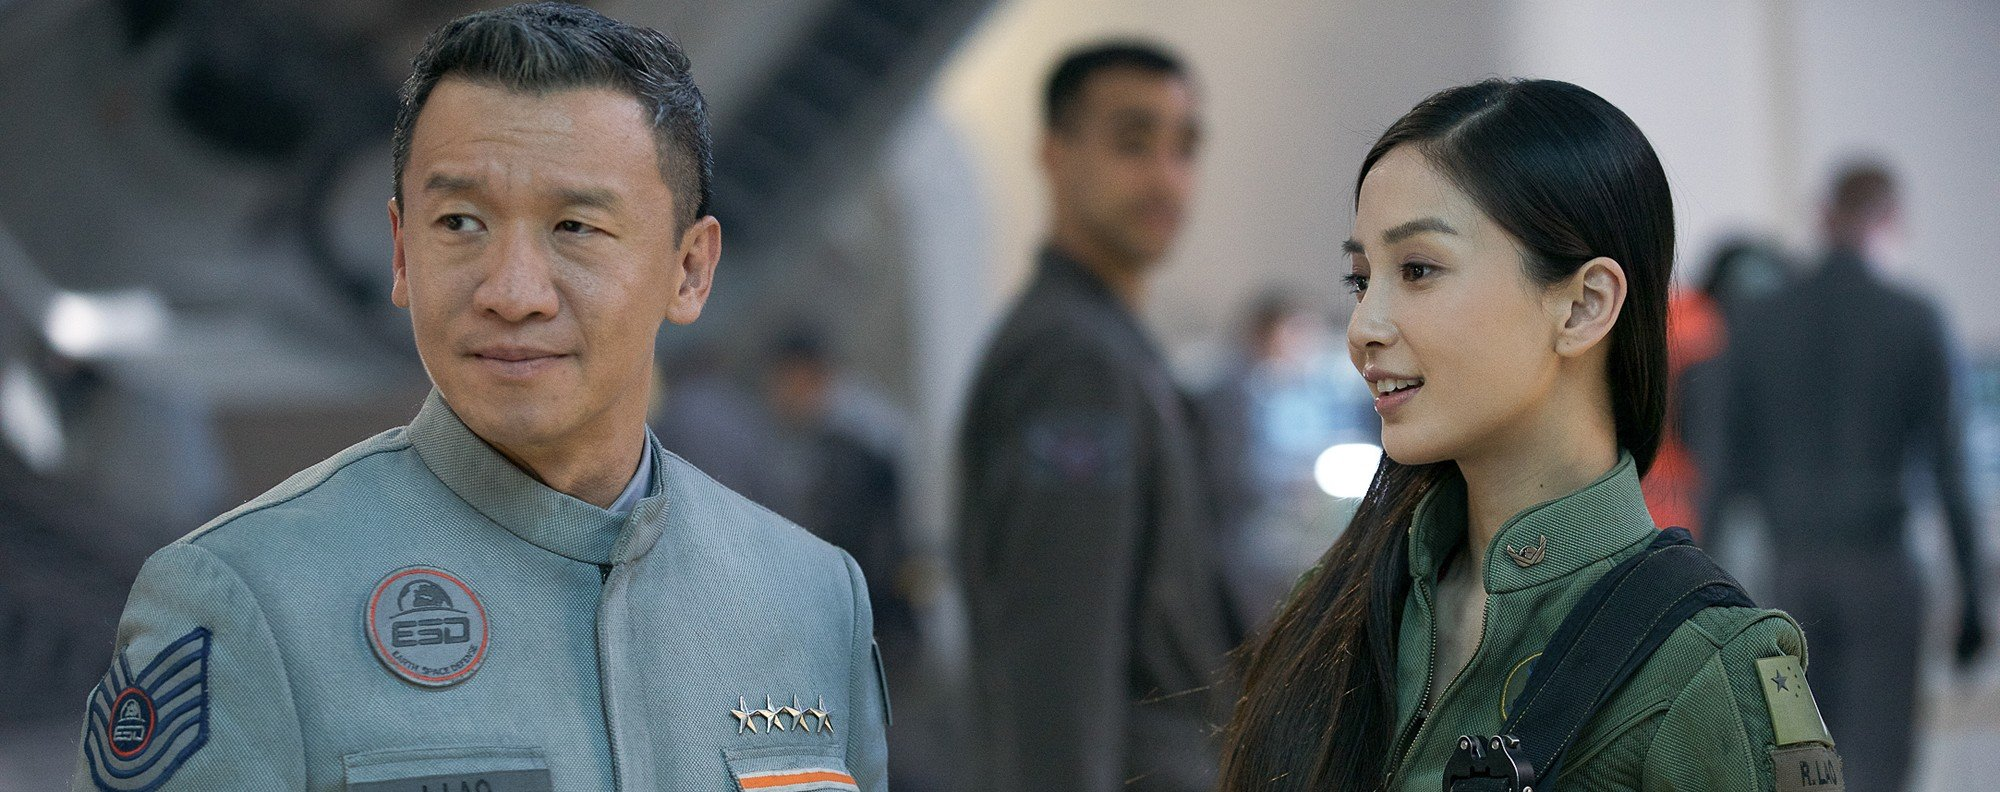 moon jun chin dating I am an associate professor in the school of computer science, the university of adelaide i received my phd in computer systems engineering in 2007 from ecse department, monash university i am also a chief investigator of the australian centre for robotic vision (acrv), and a core member of the australian.